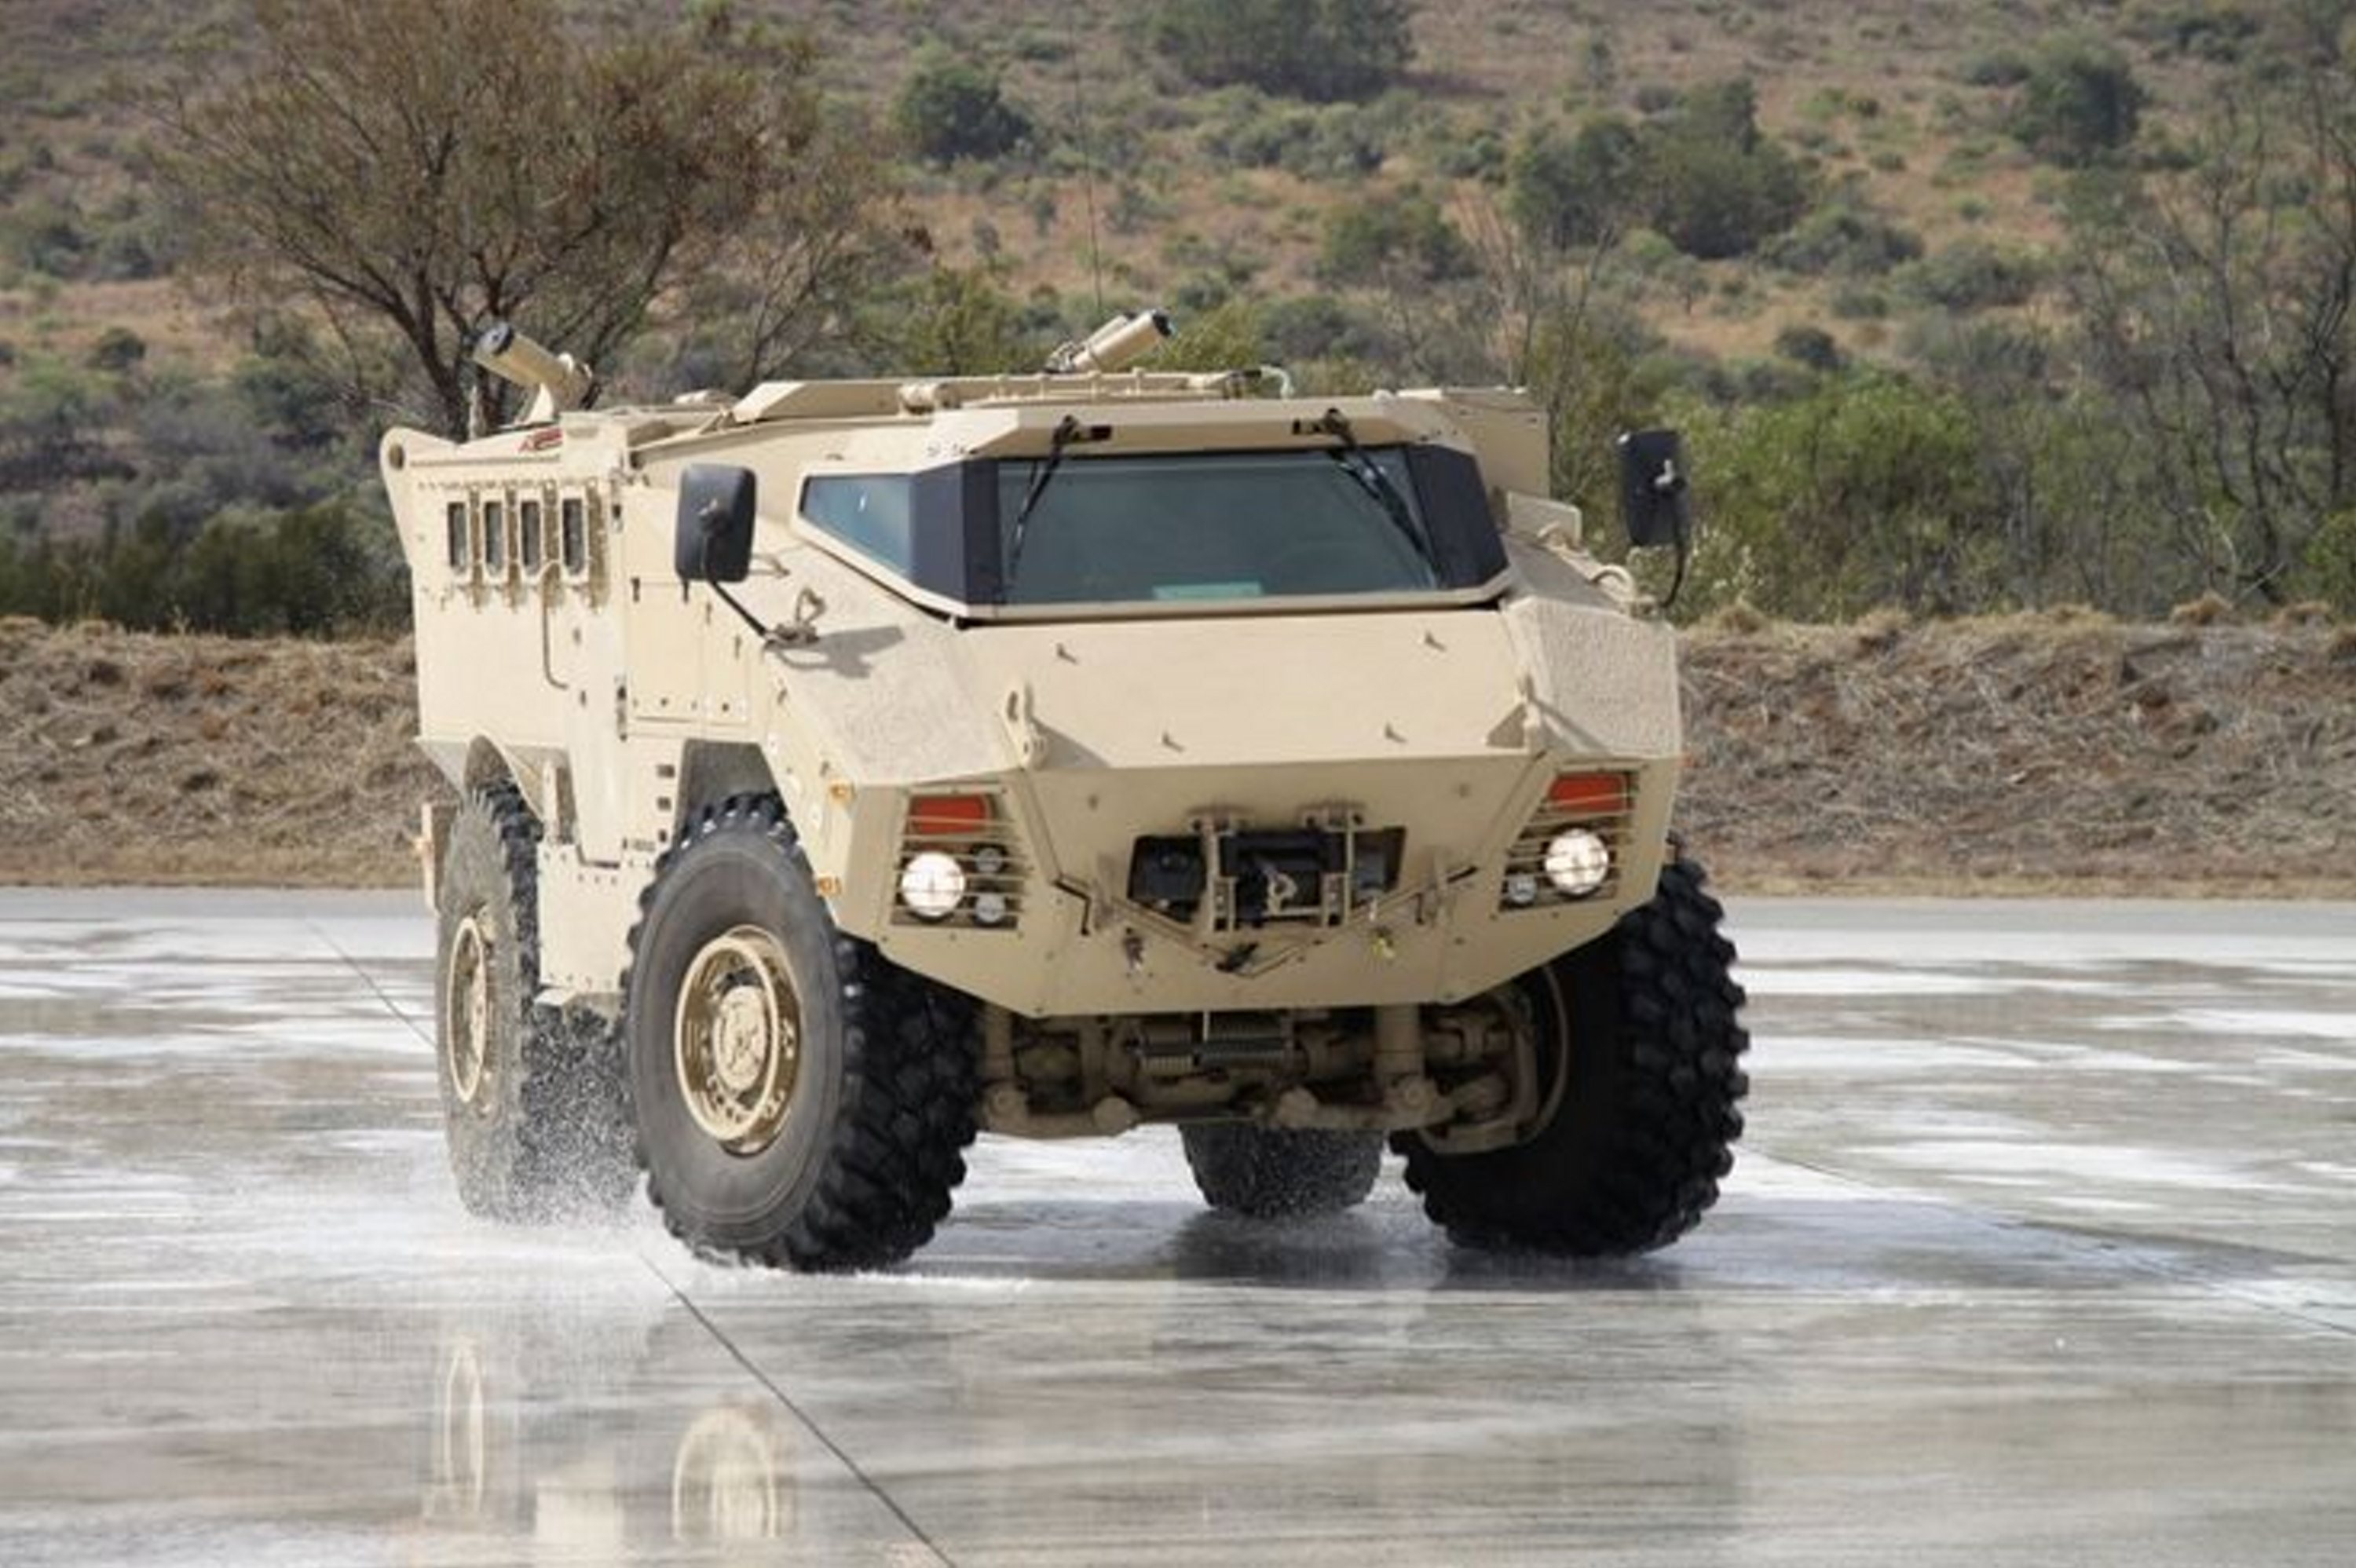 denel helicopter with Apc 4x4 2 on Gallery military attack helicopters further Saaf 1239 South Africa Air Force Denel Oryx furthermore 2010AAD furthermore Showthread further South Africa Wants To Resuscitate Its Arms Industry 139a79ccd551.